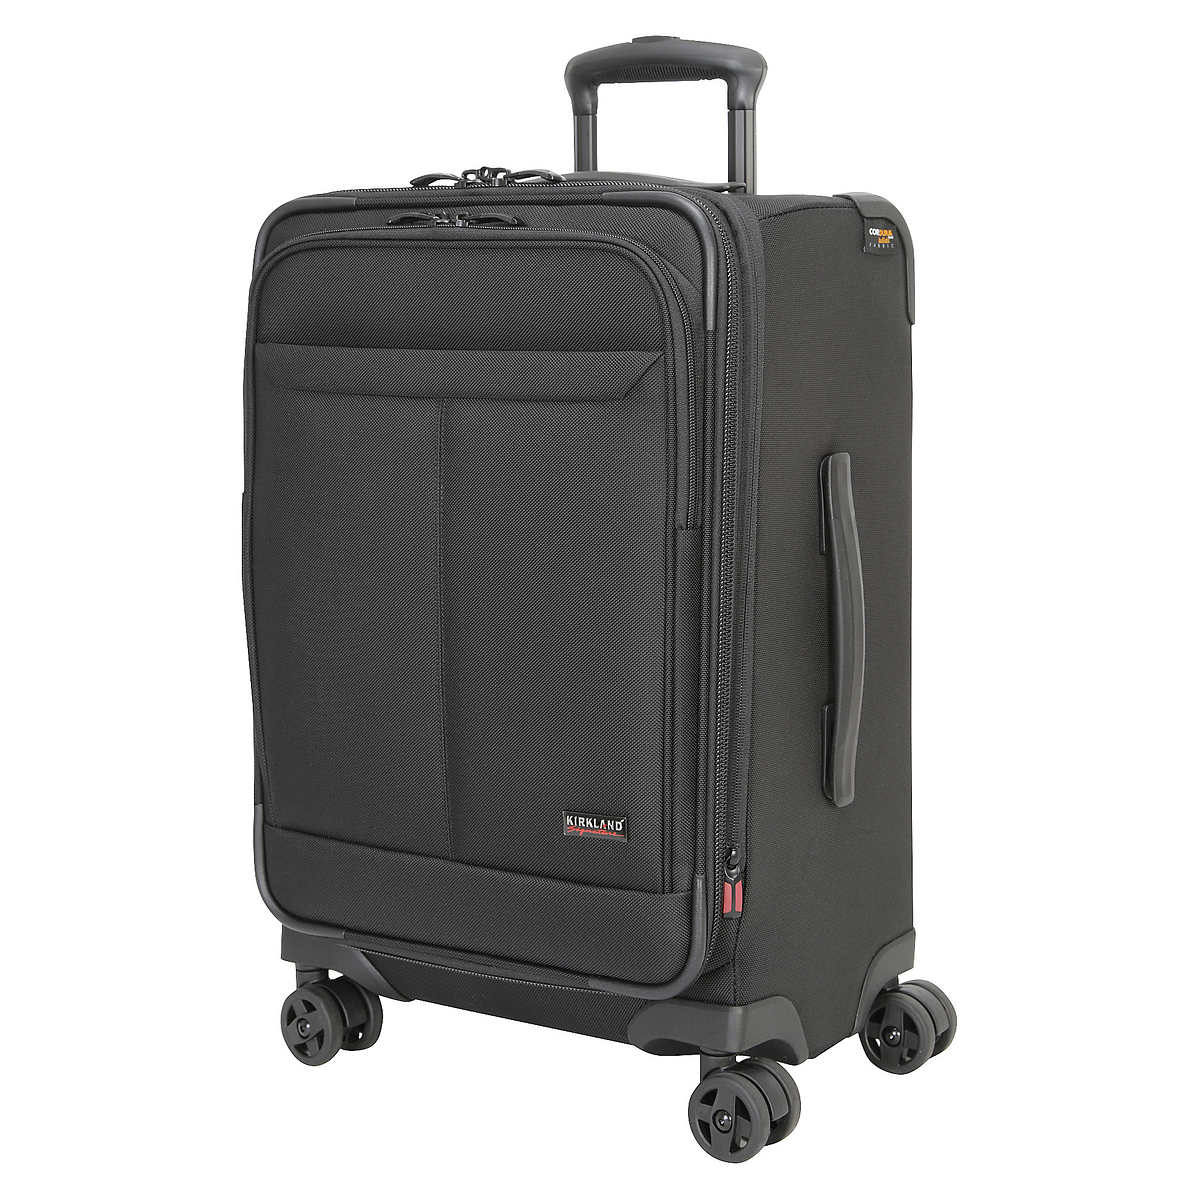 Carry-Ons | Costco